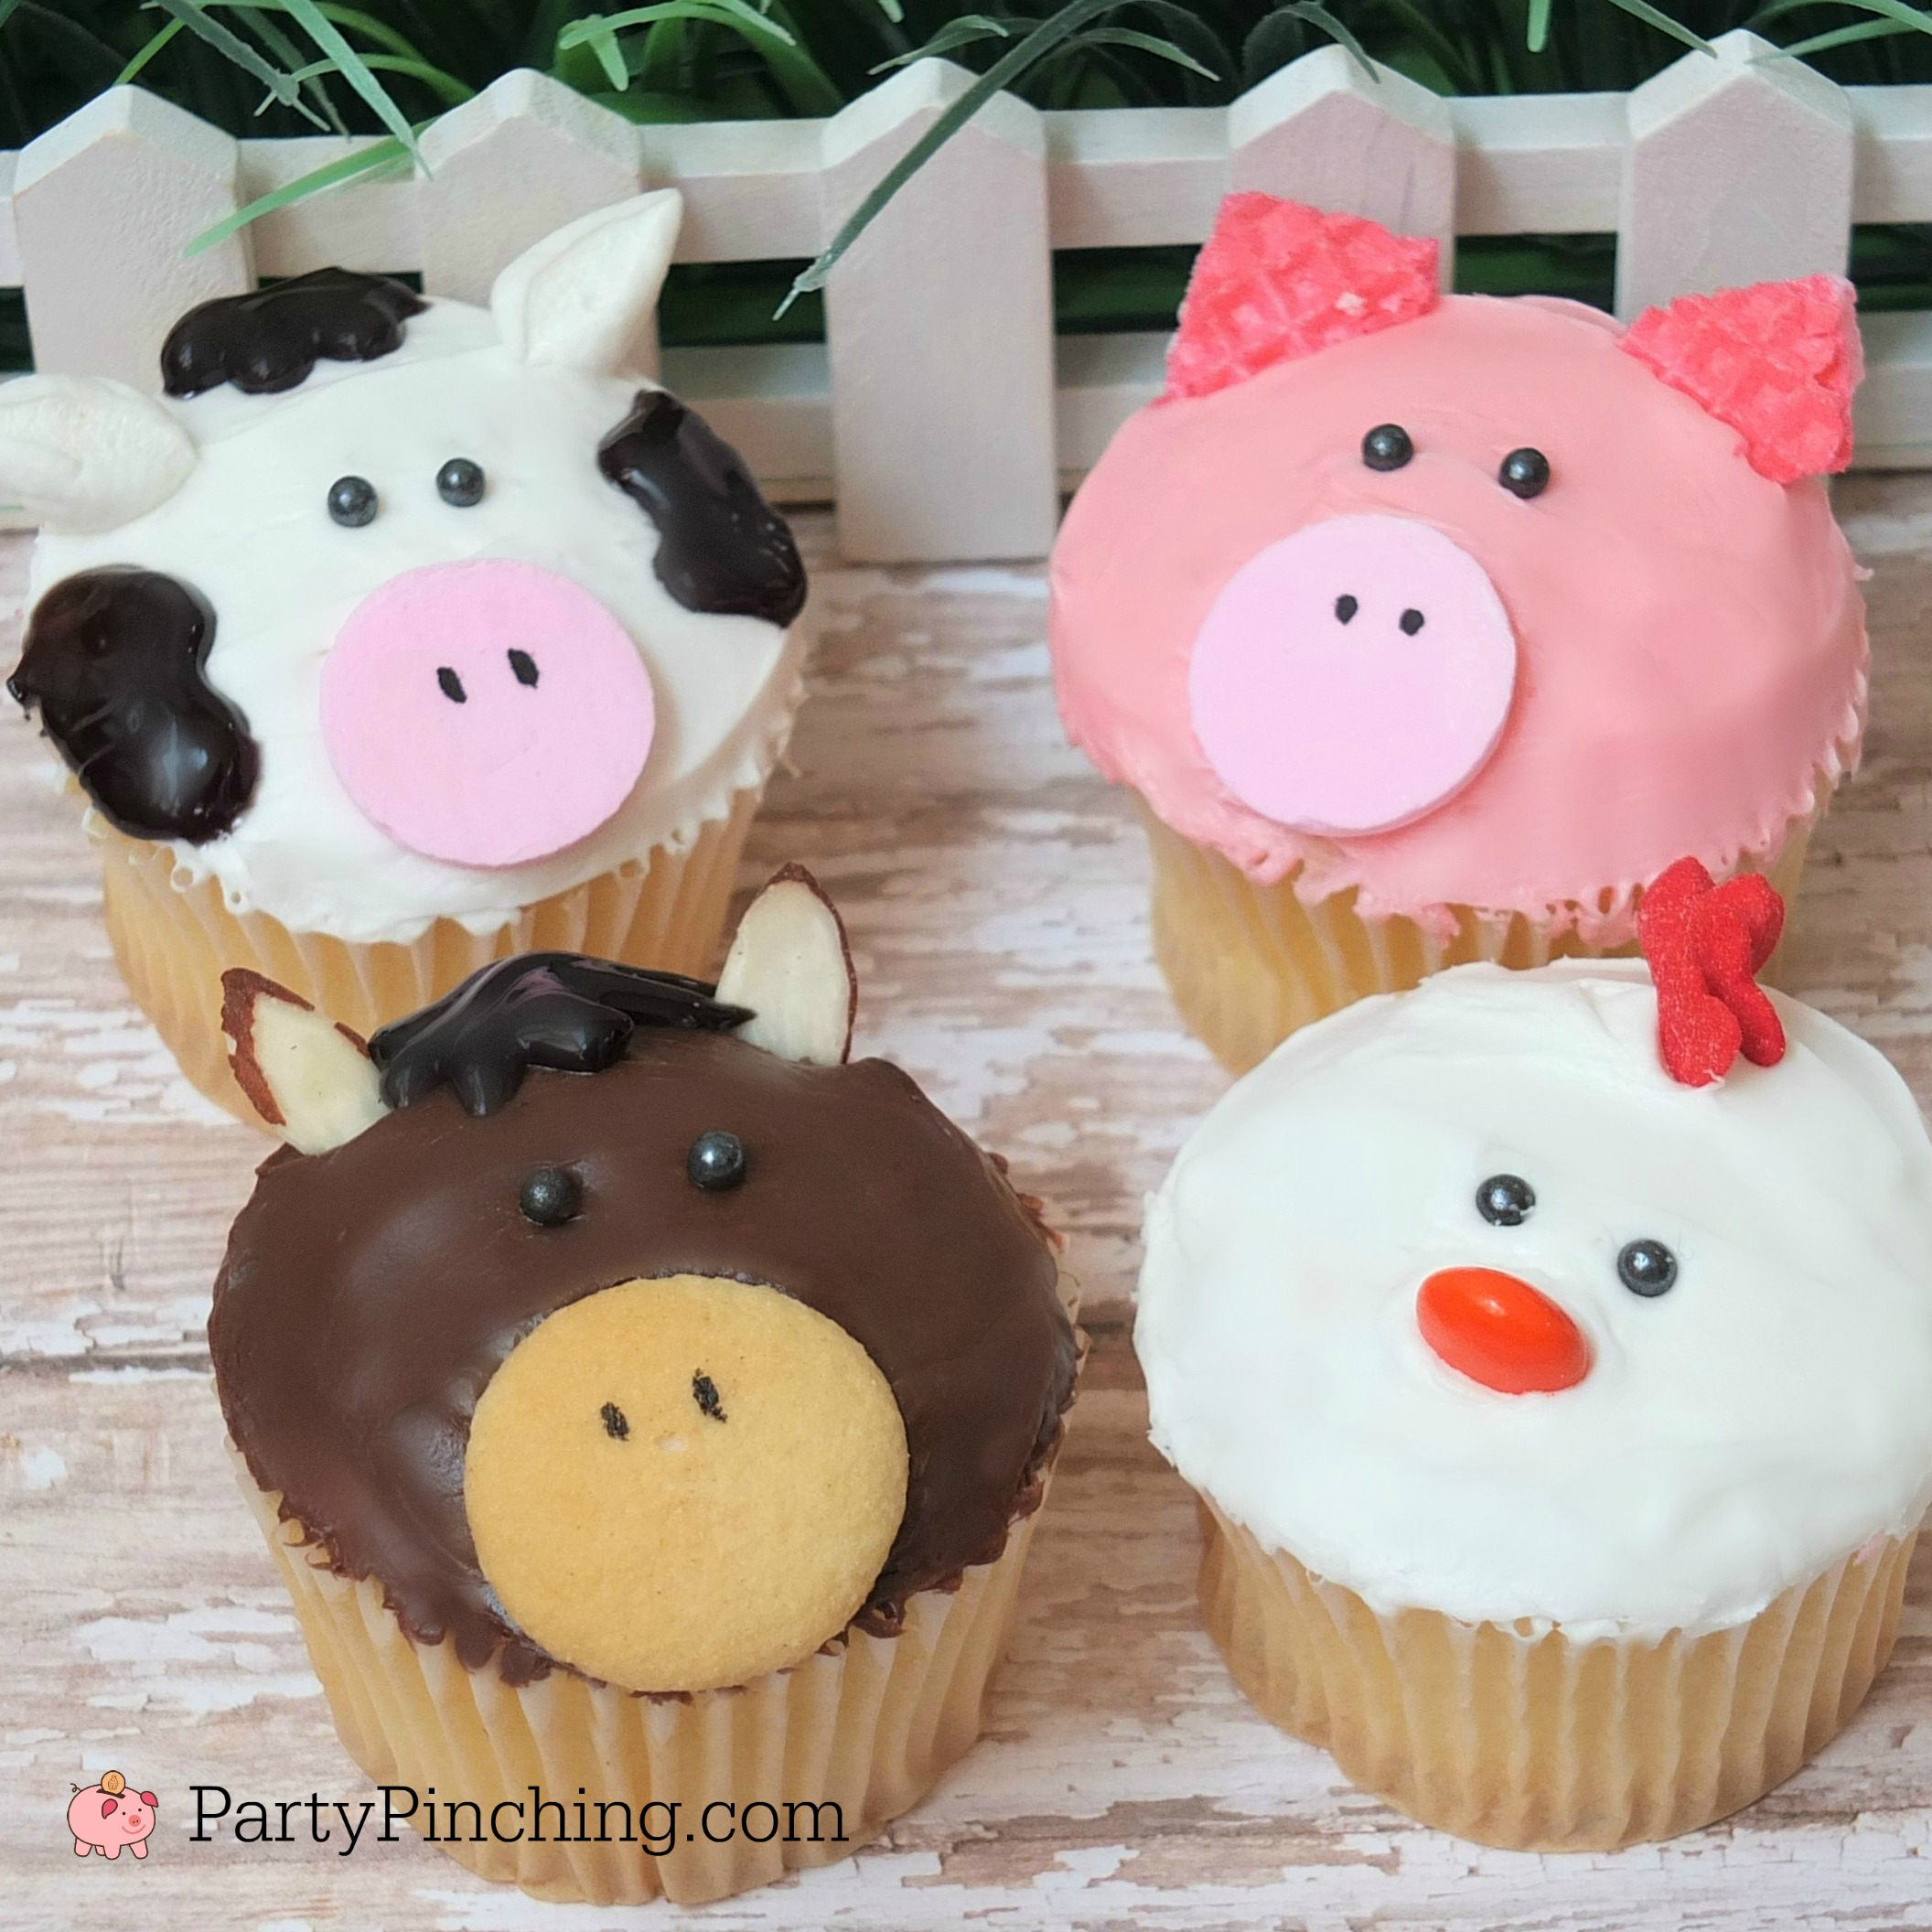 Farm Barnyard Animal Cupcakes, Cow Pig Horse Chicken Cupcakes